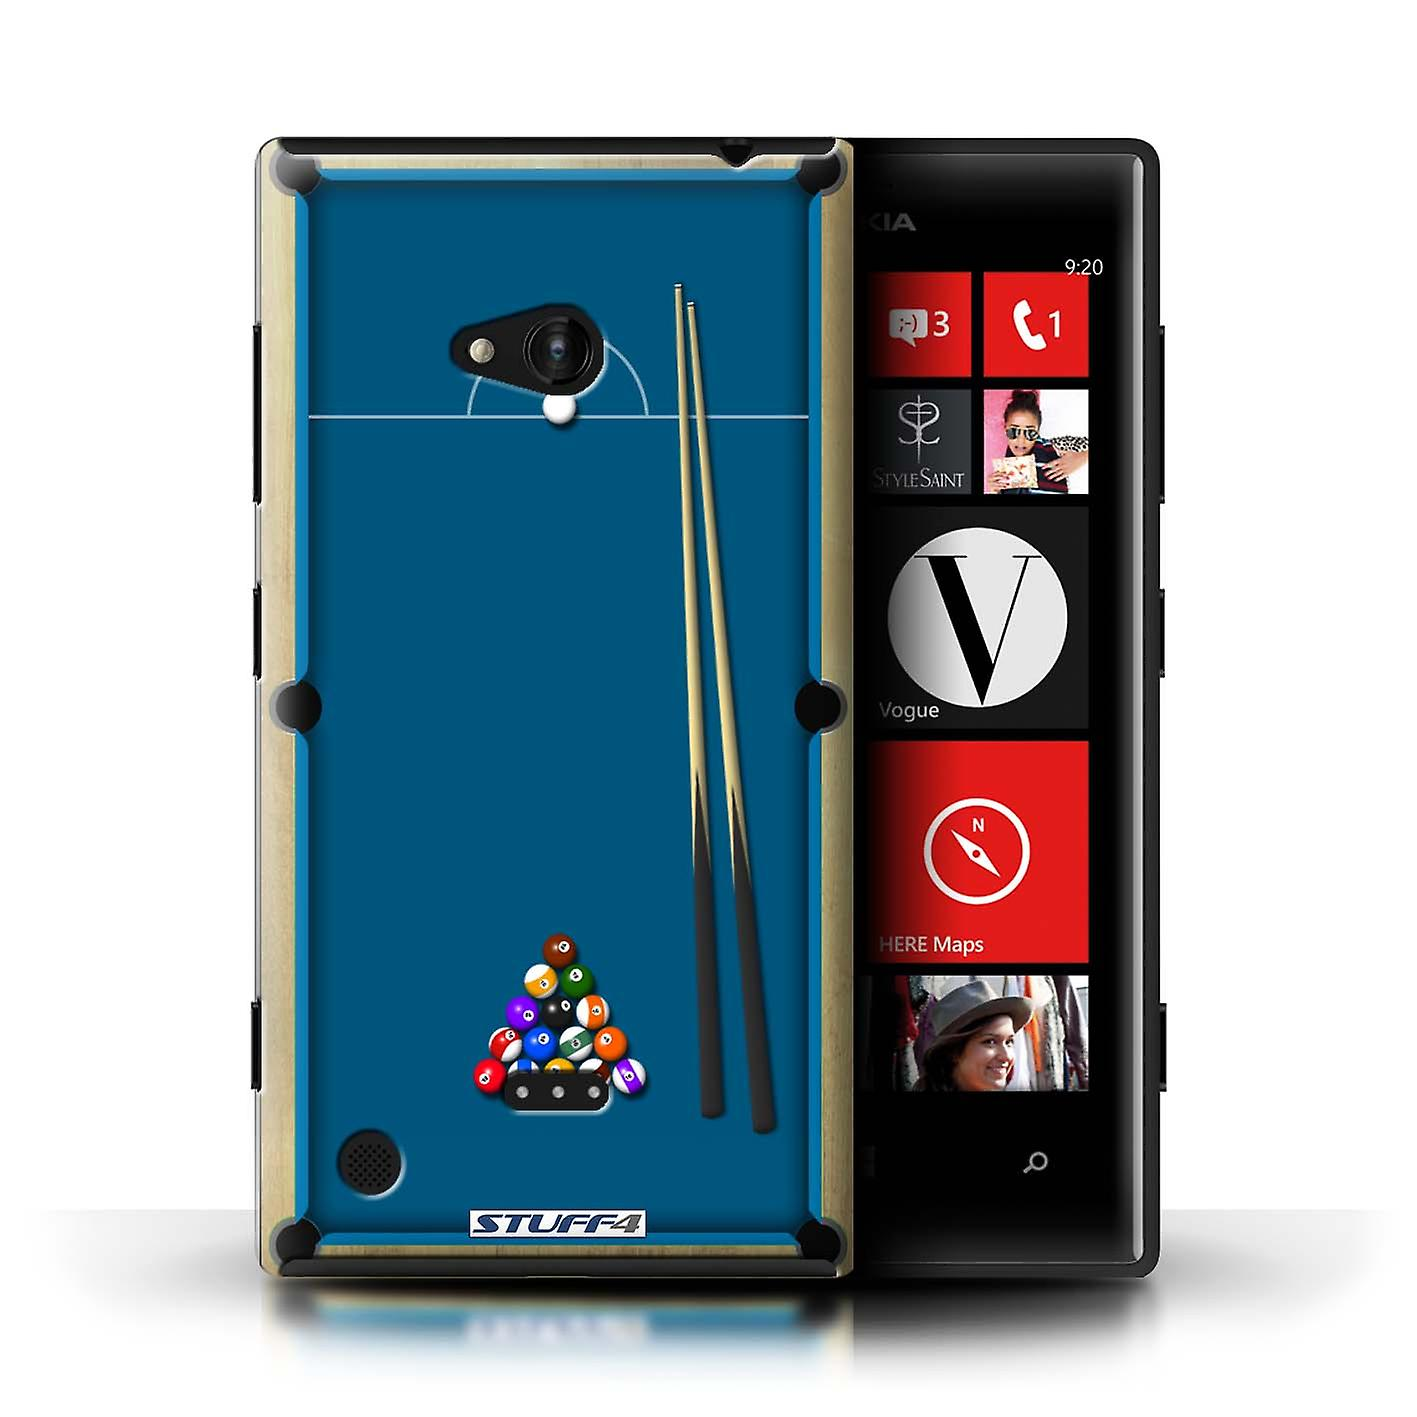 STUFF4 Case/Cover for Nokia Lumia 720/Pool/Billiards Blue/Games